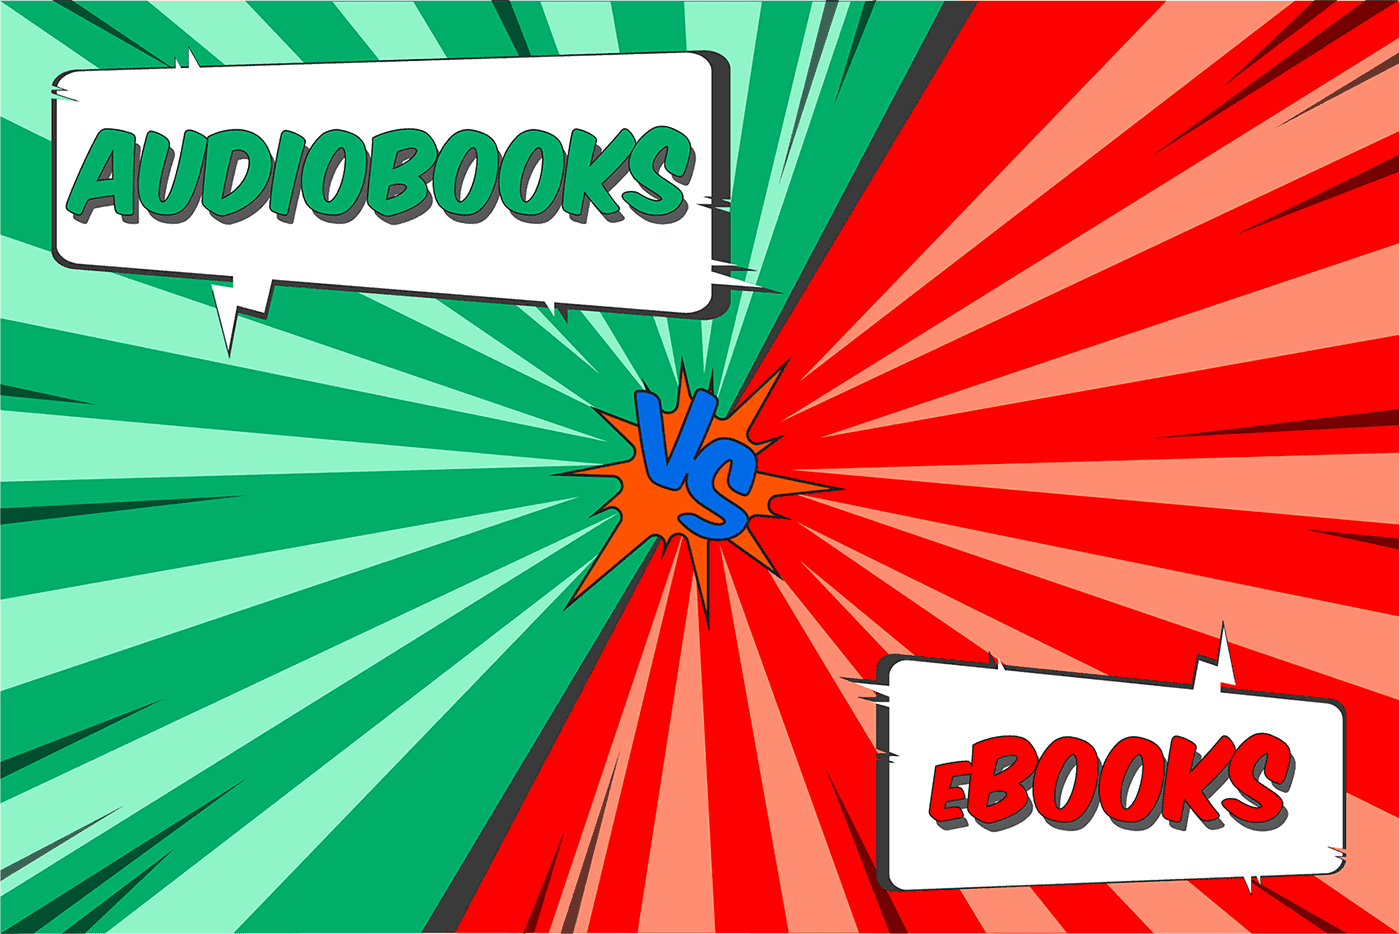 Audiobooks vs eBooks